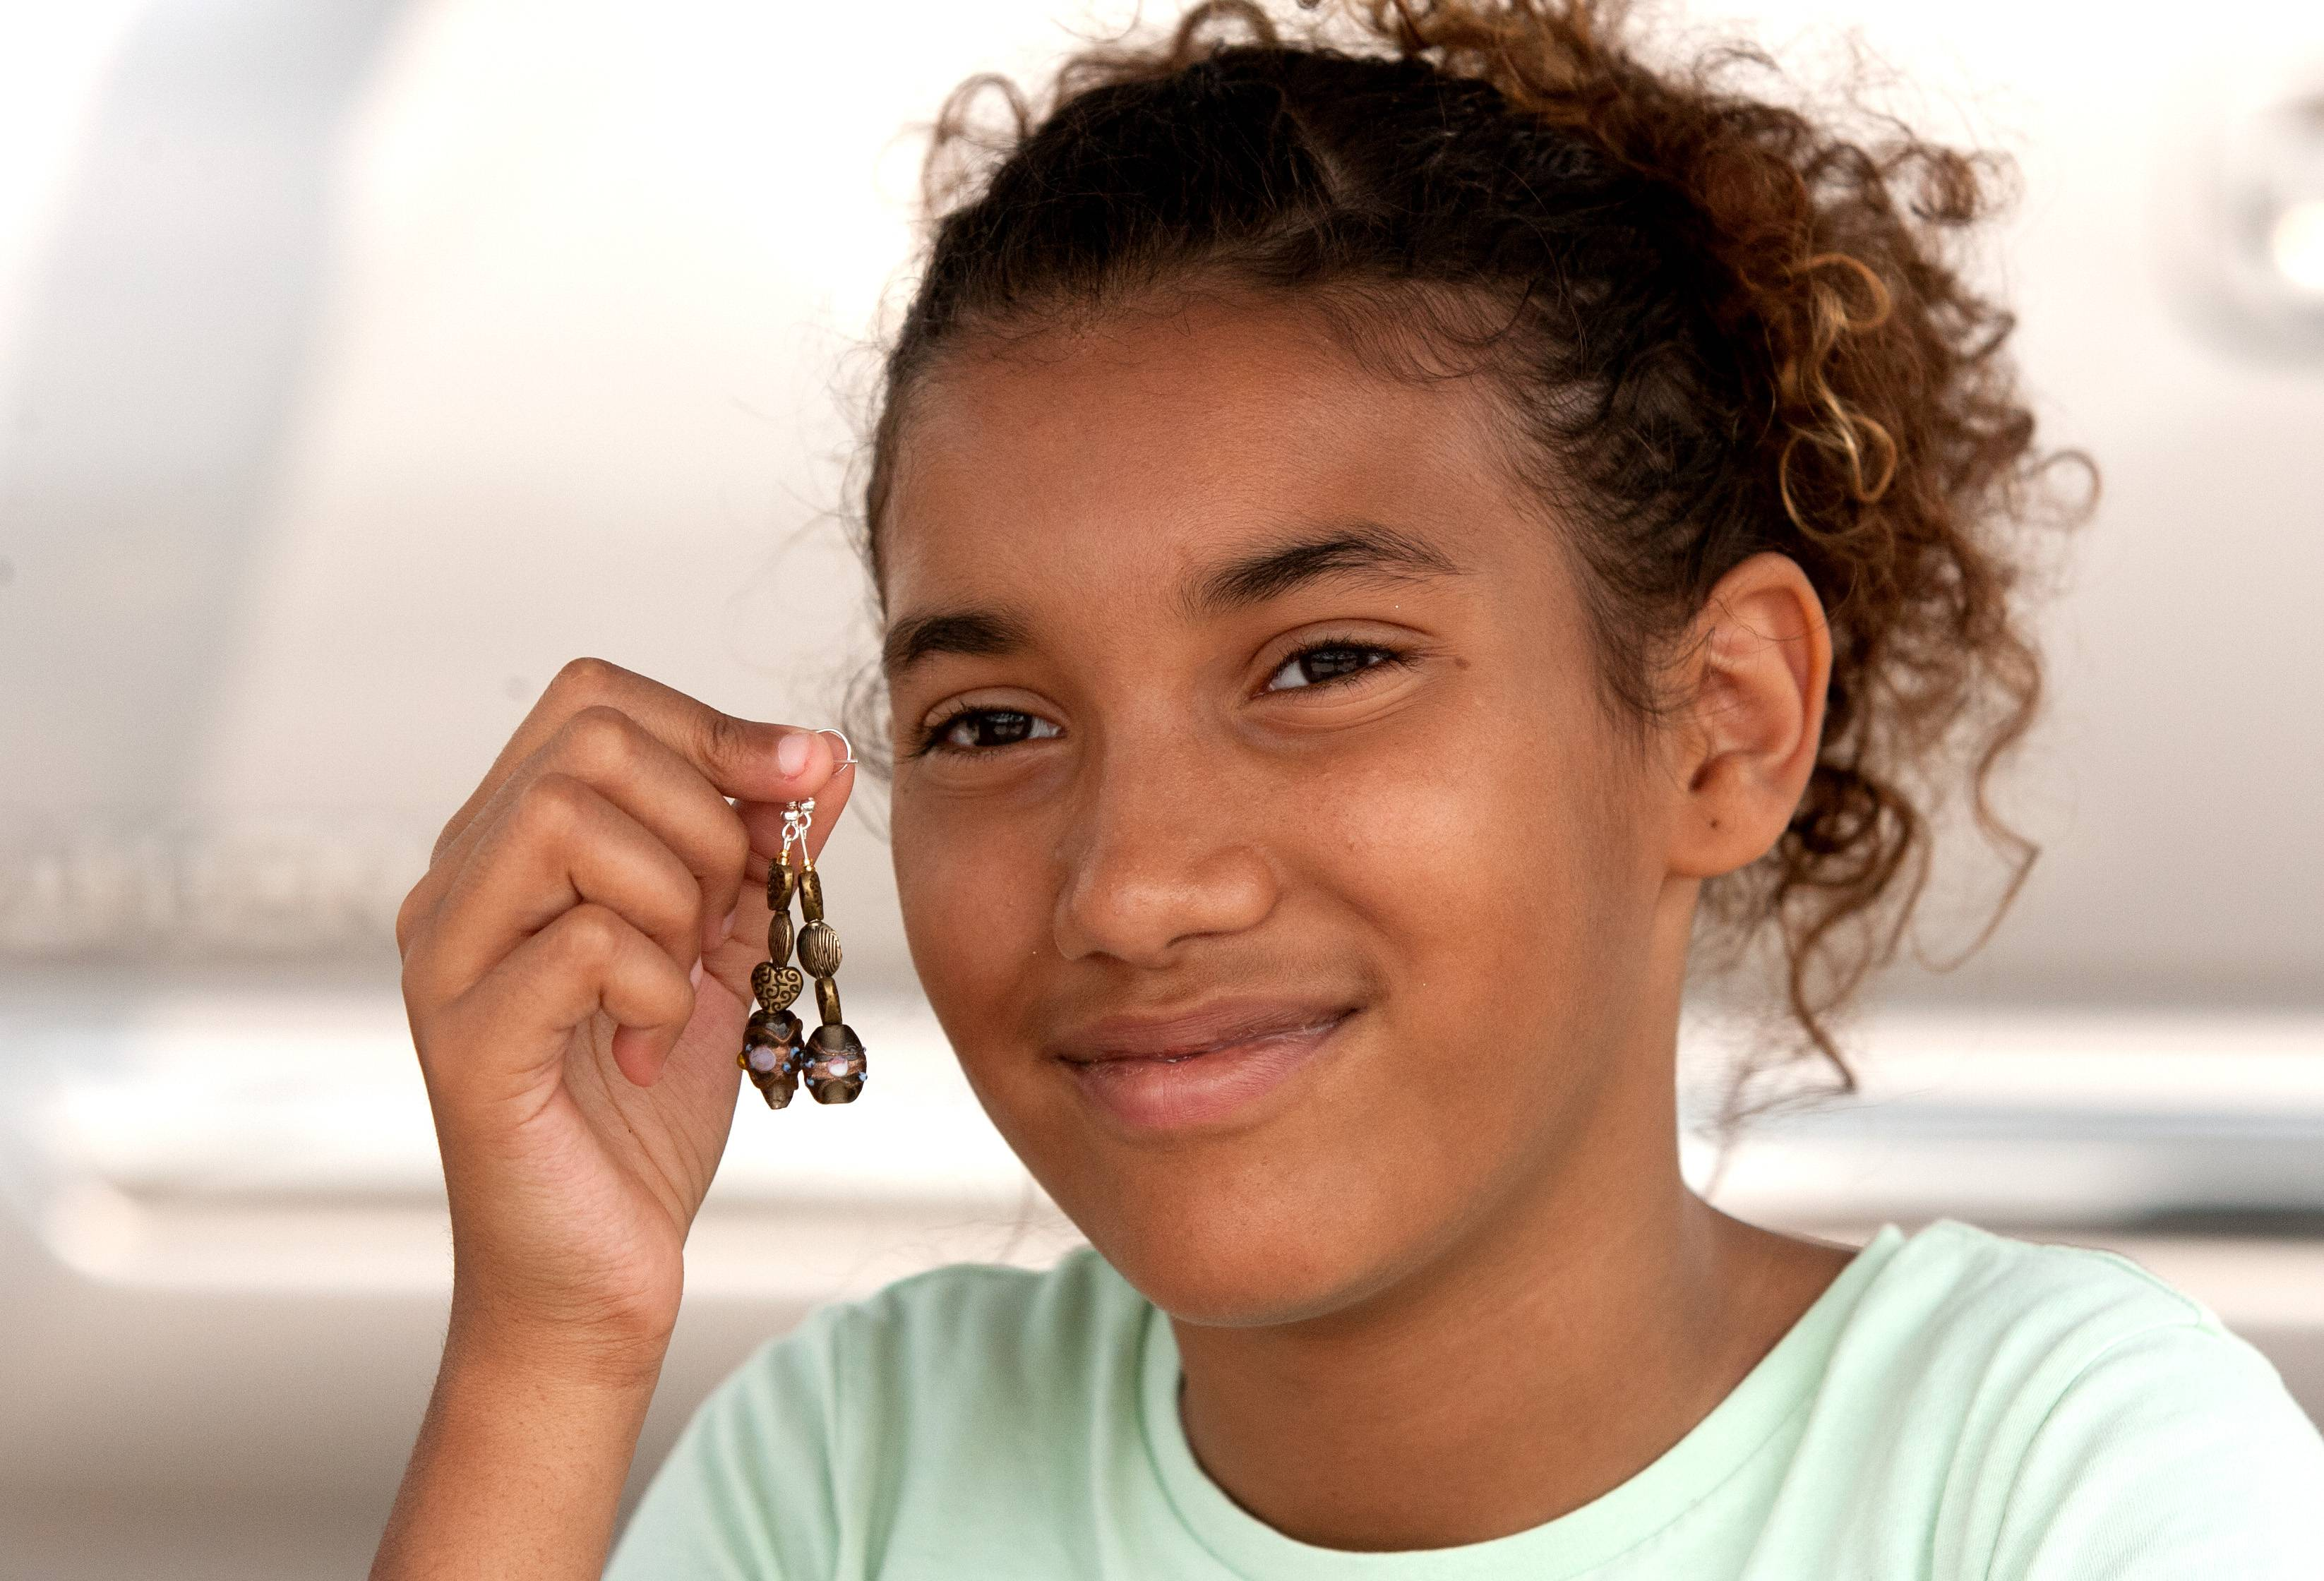 Phynea Mitchell of Designs by Phynea sells handmade earrings as part of the Young Entrepreneurs program at Aurora's farmers markets.